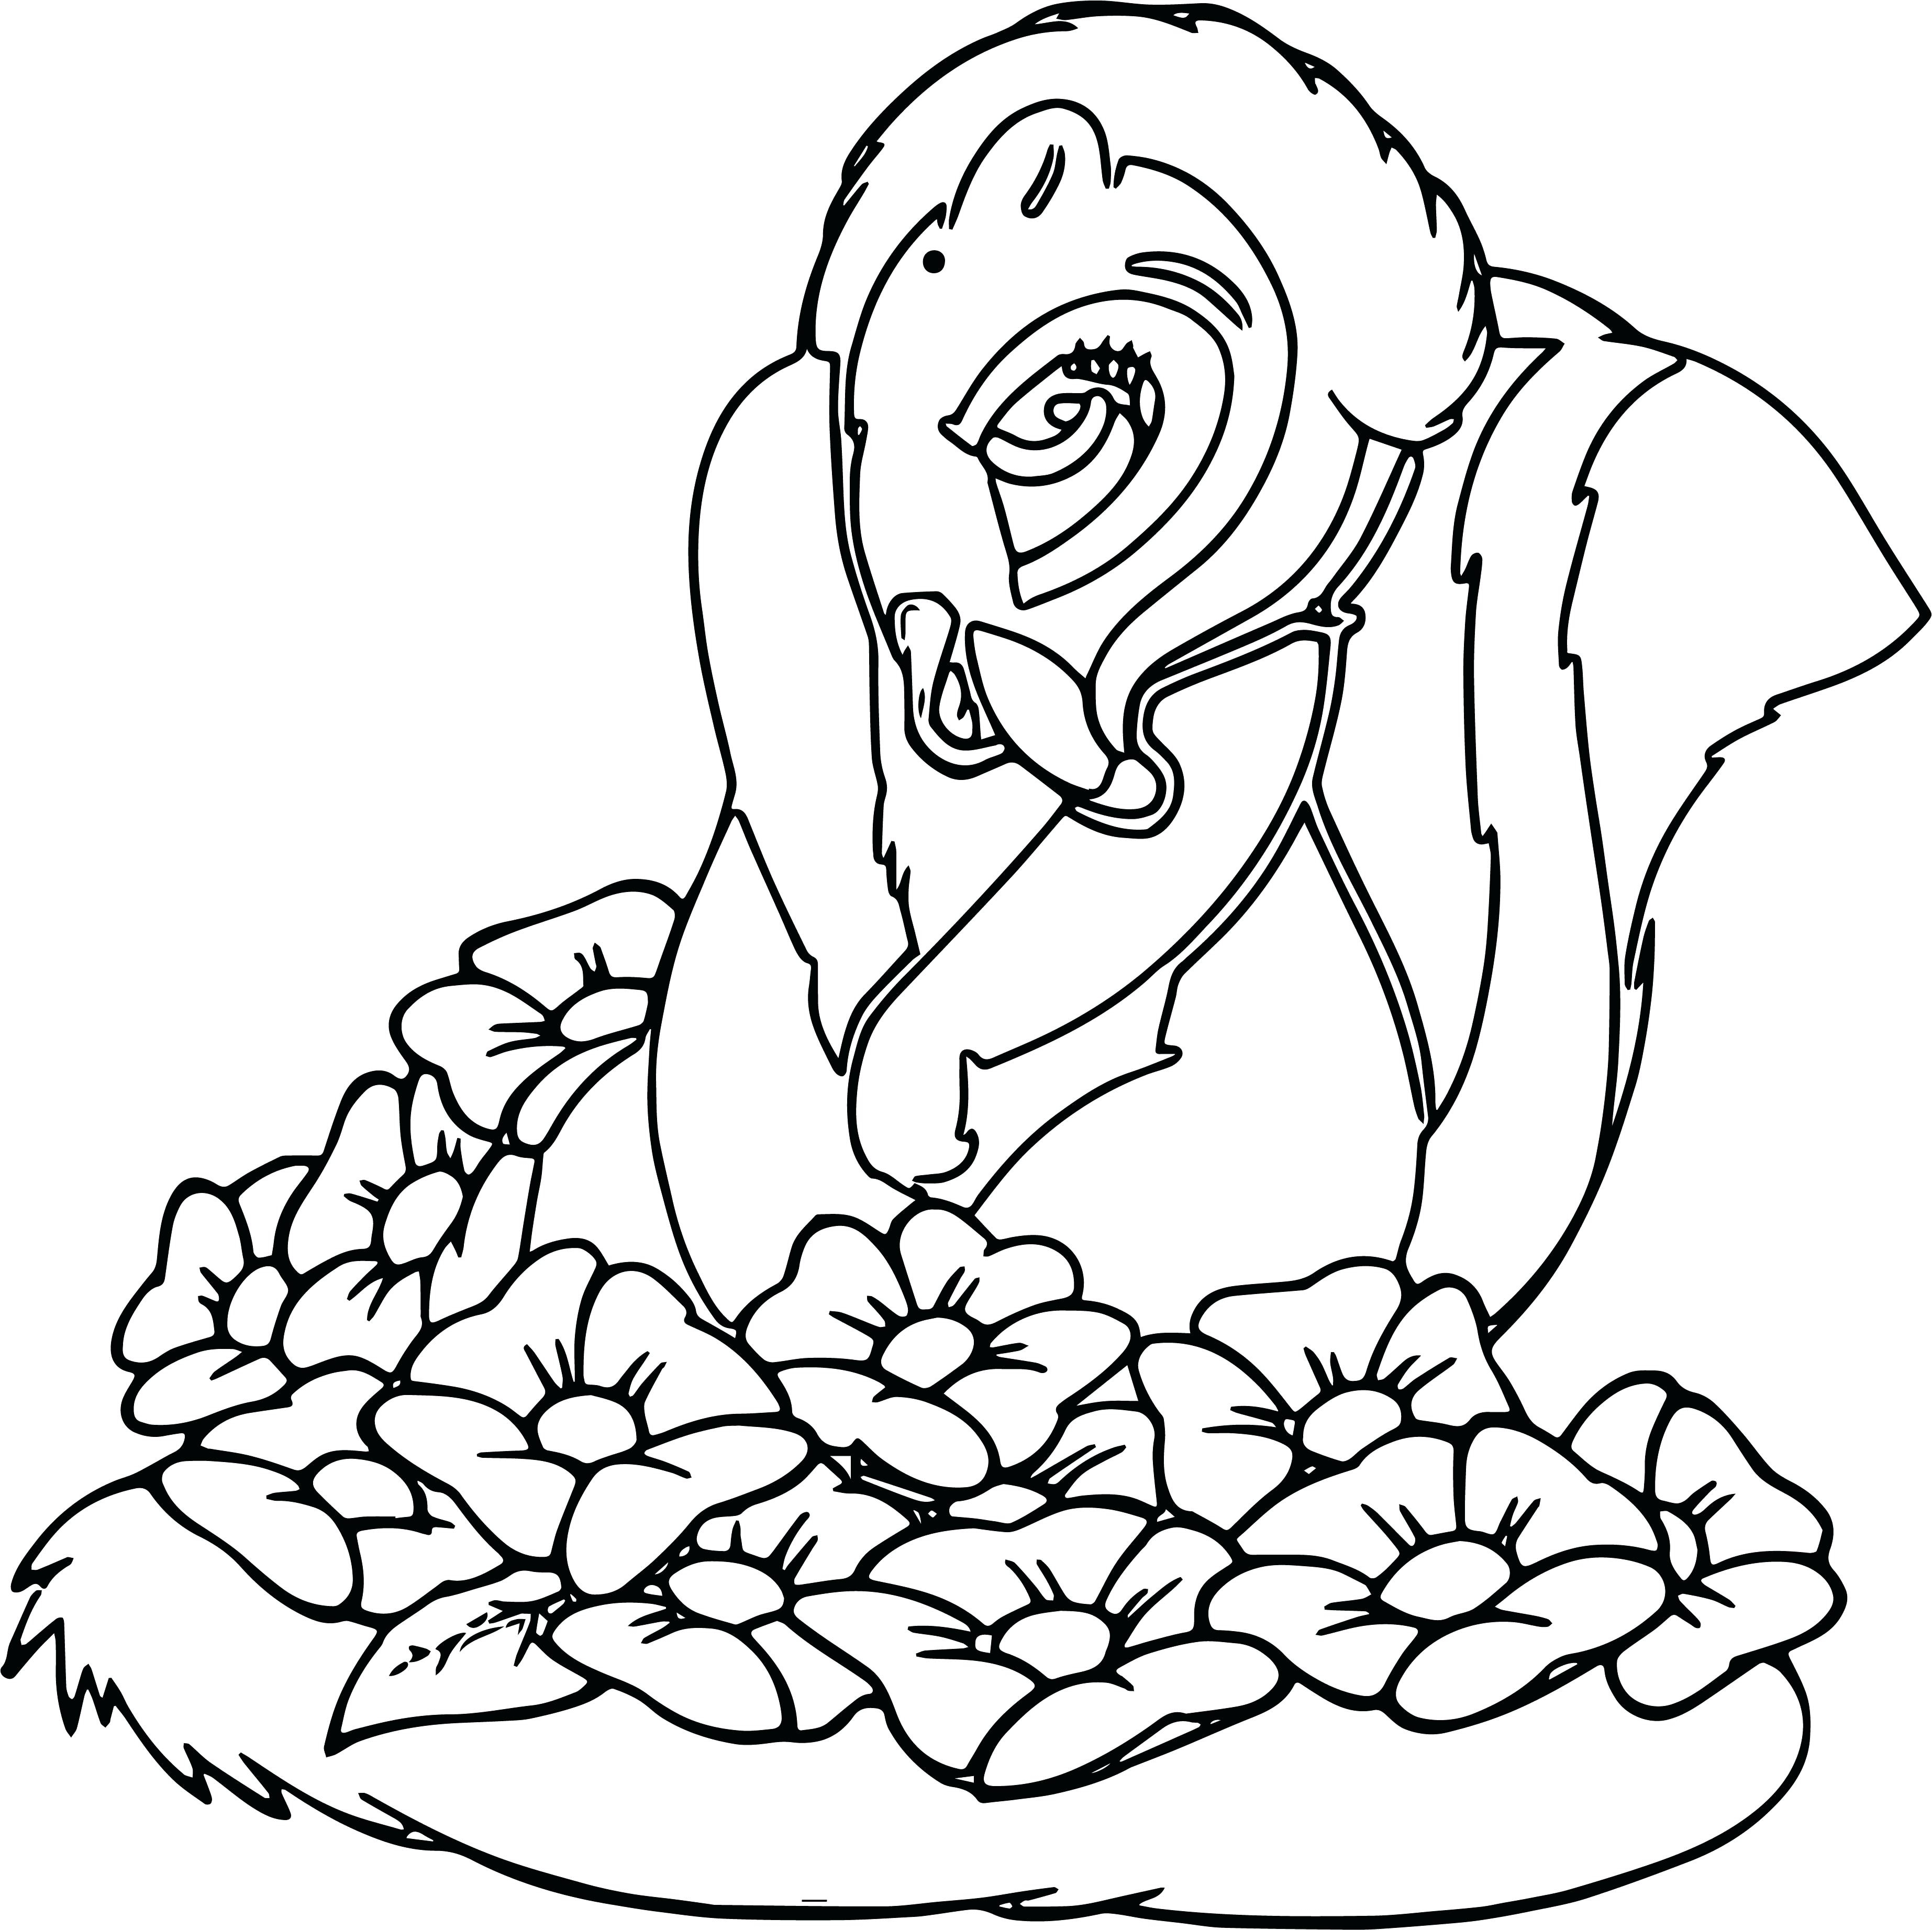 3690x3687 Full Size Coloring Pages Disney Printable For Adults Free